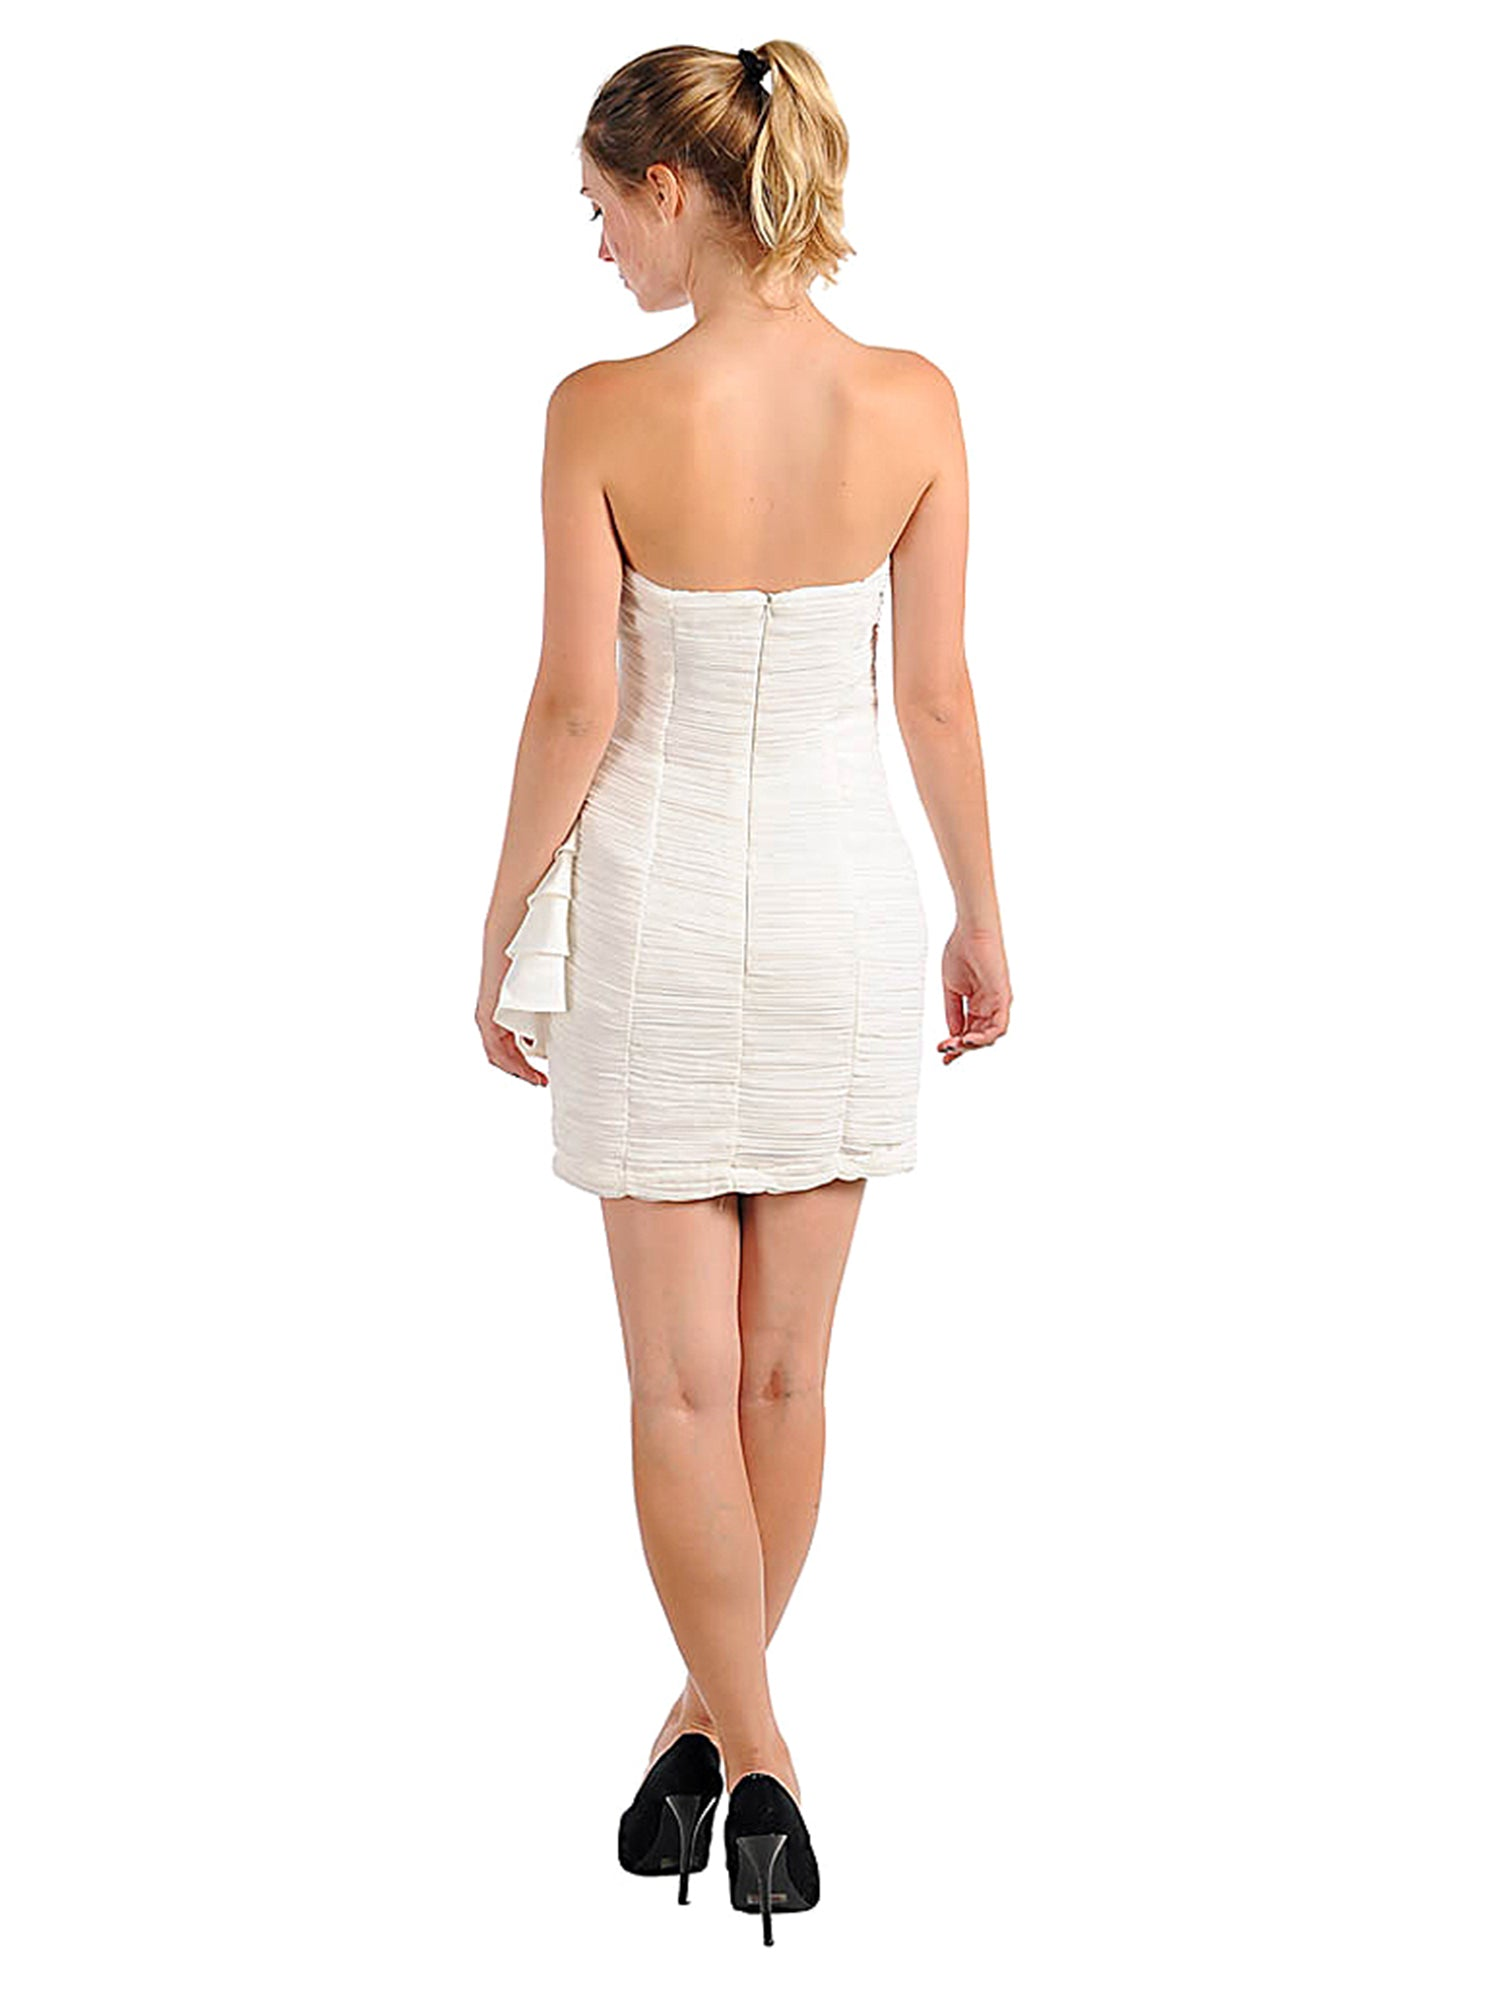 Strapless Cocktail Dress With Ruffle Bottom